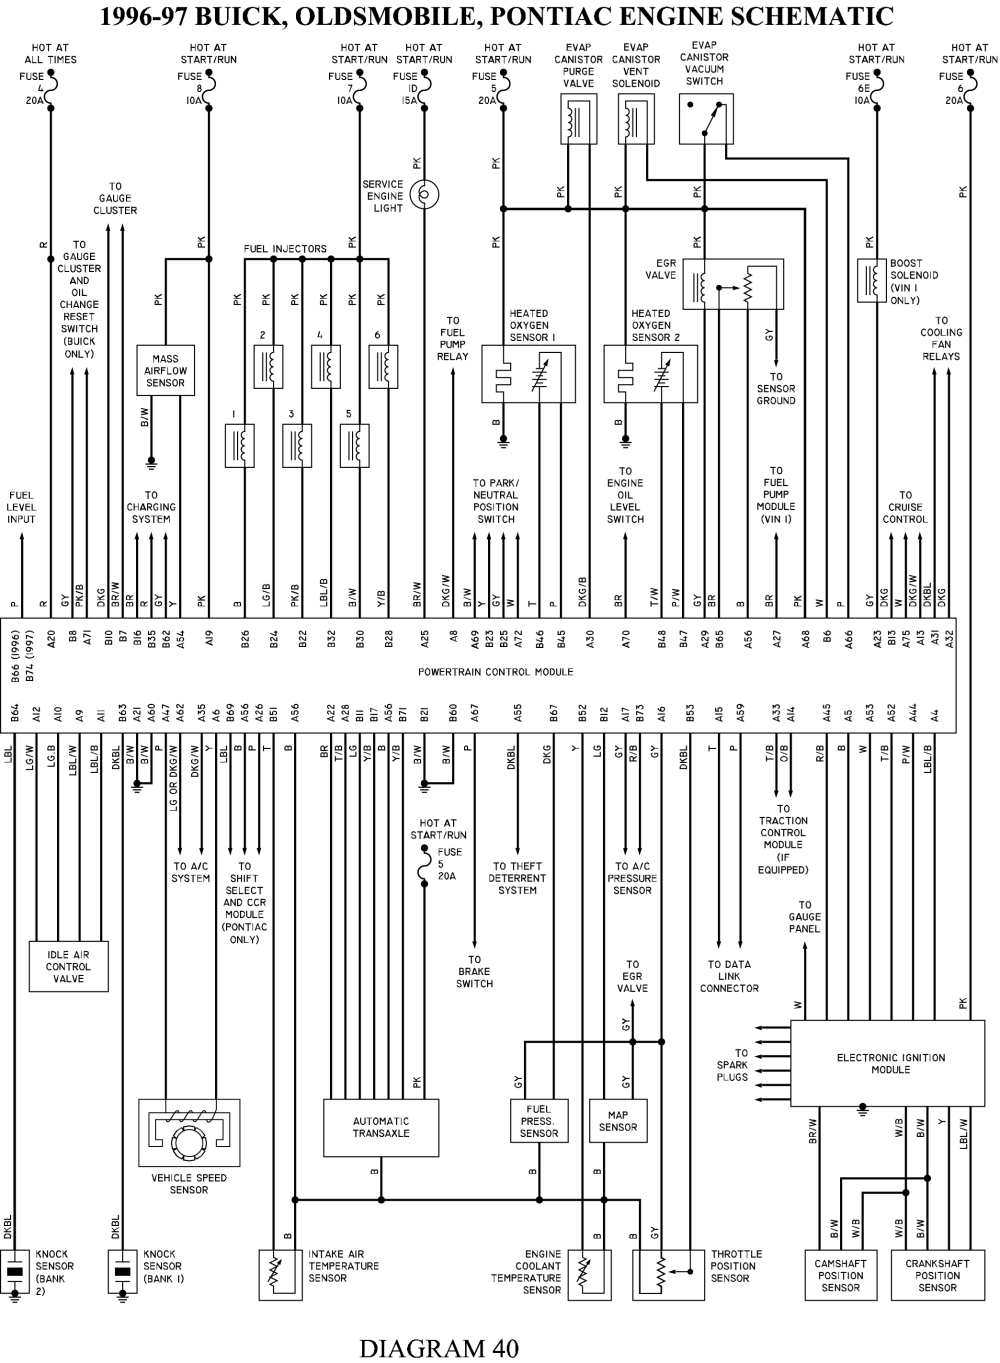 1992 Buick Lesabre Wiring Diagrams Schematics Diagram For Heater Fan Alternator Schematic Core Replacement